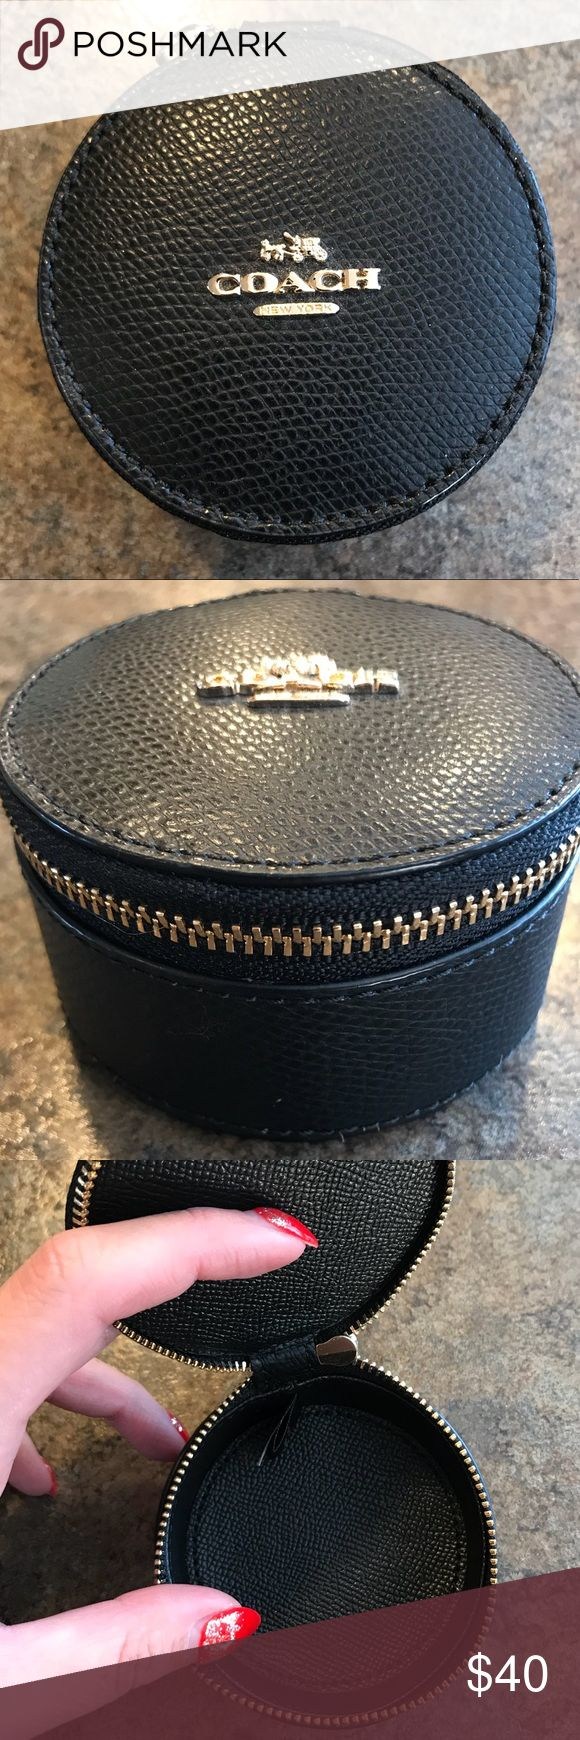 "// coach jewelry case // Coach Jewelry Case :Retails for $65 :Color - Black w. gold hardware :Size 3""W // 2""H :Crossgrain leather :Zipper :NWOT (no tags were attached when I bought it at the store) :Multi-usage - jewelry, coins, medication, etc. :Comes from a smoke & pet free home  ❤️MONEY GOES TOWARD SCHOOL SUPPLIES FOR DISADVANTAGED STUDENTS. THANK YOU!❤️ Coach Bags"